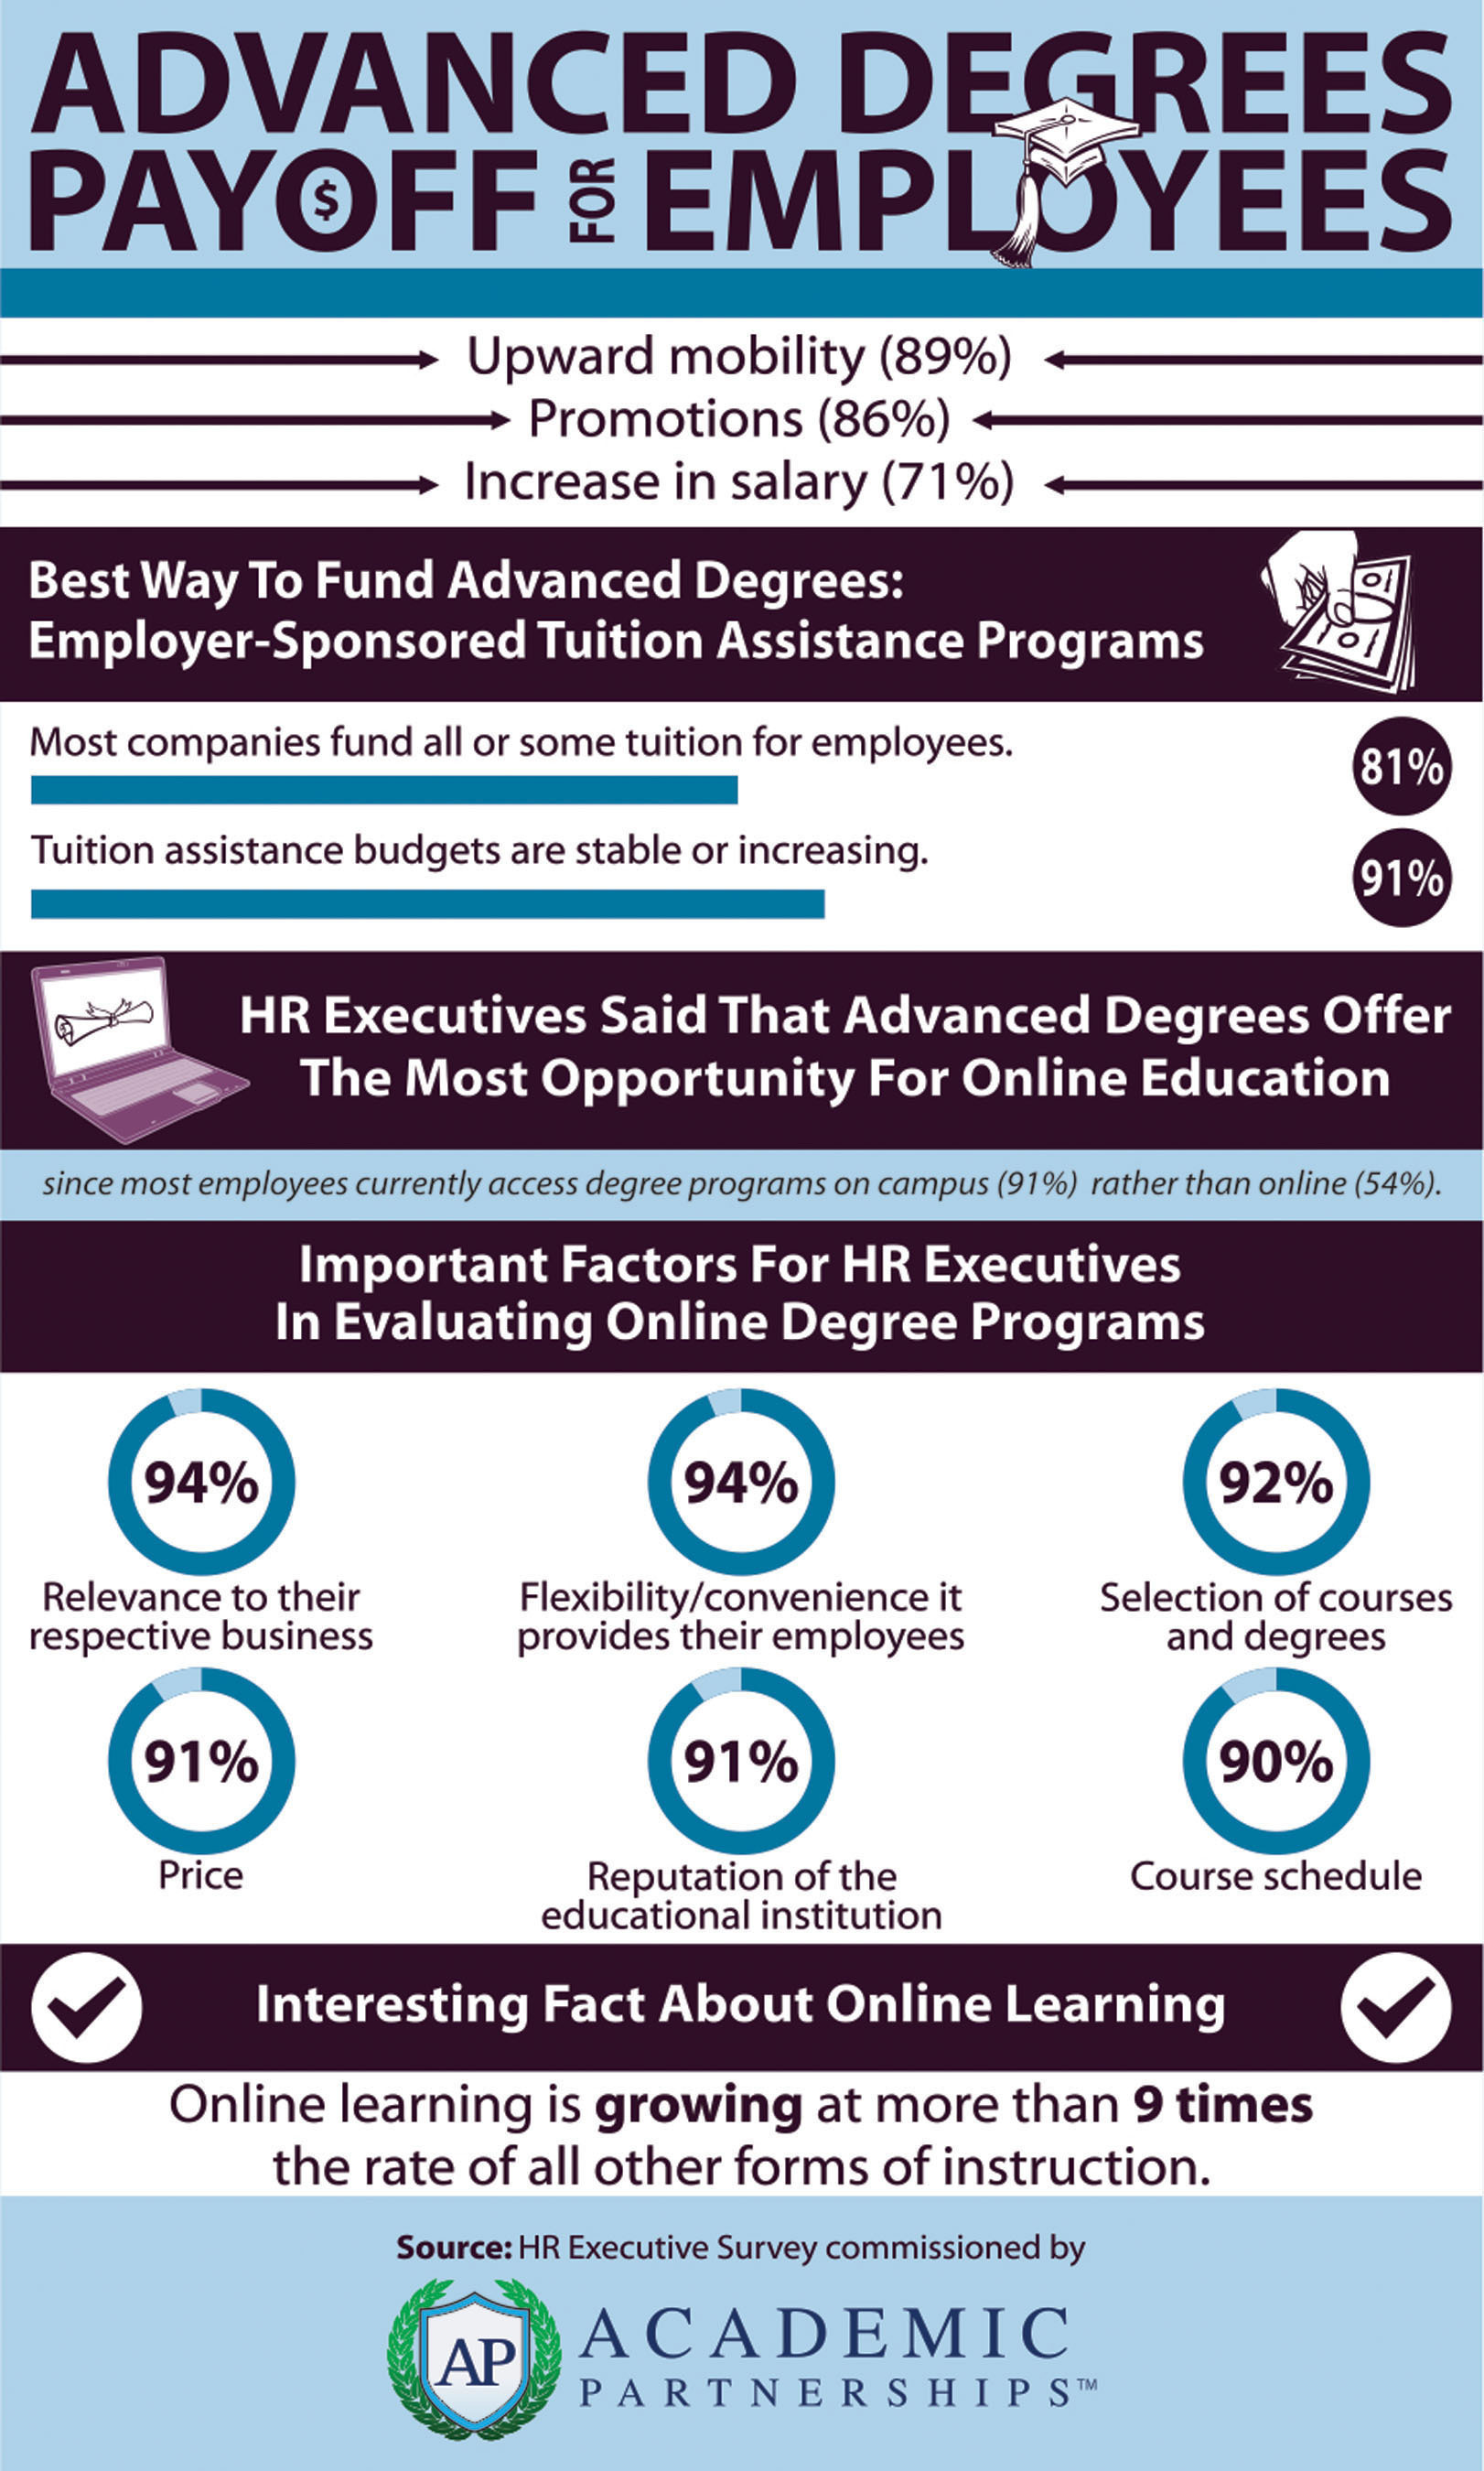 Human Resources Executives Confirm Advanced Degrees Lead to Promotions, Higher Salaries, Increased Value in ...